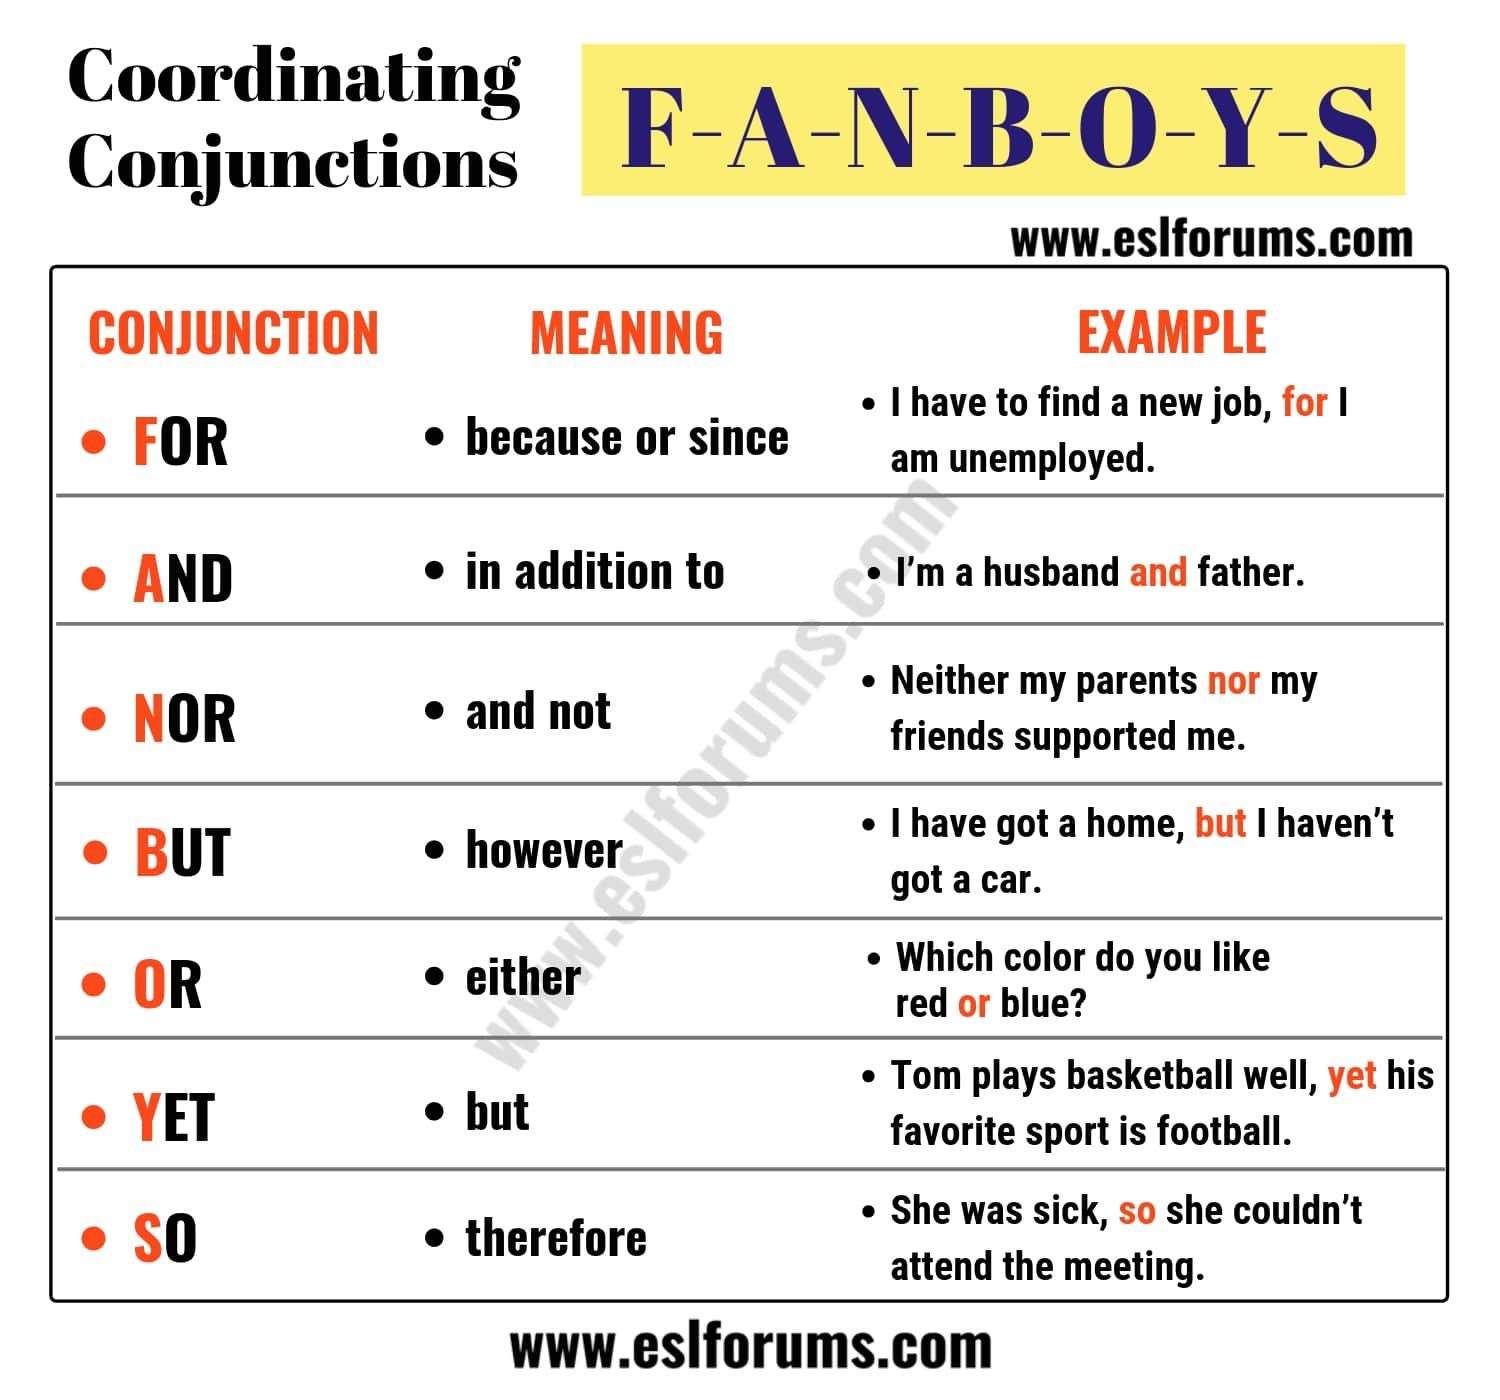 hight resolution of FANBOYS: 7 Important Coordinating Conjunctions - ESL Forums   English  vocabulary words